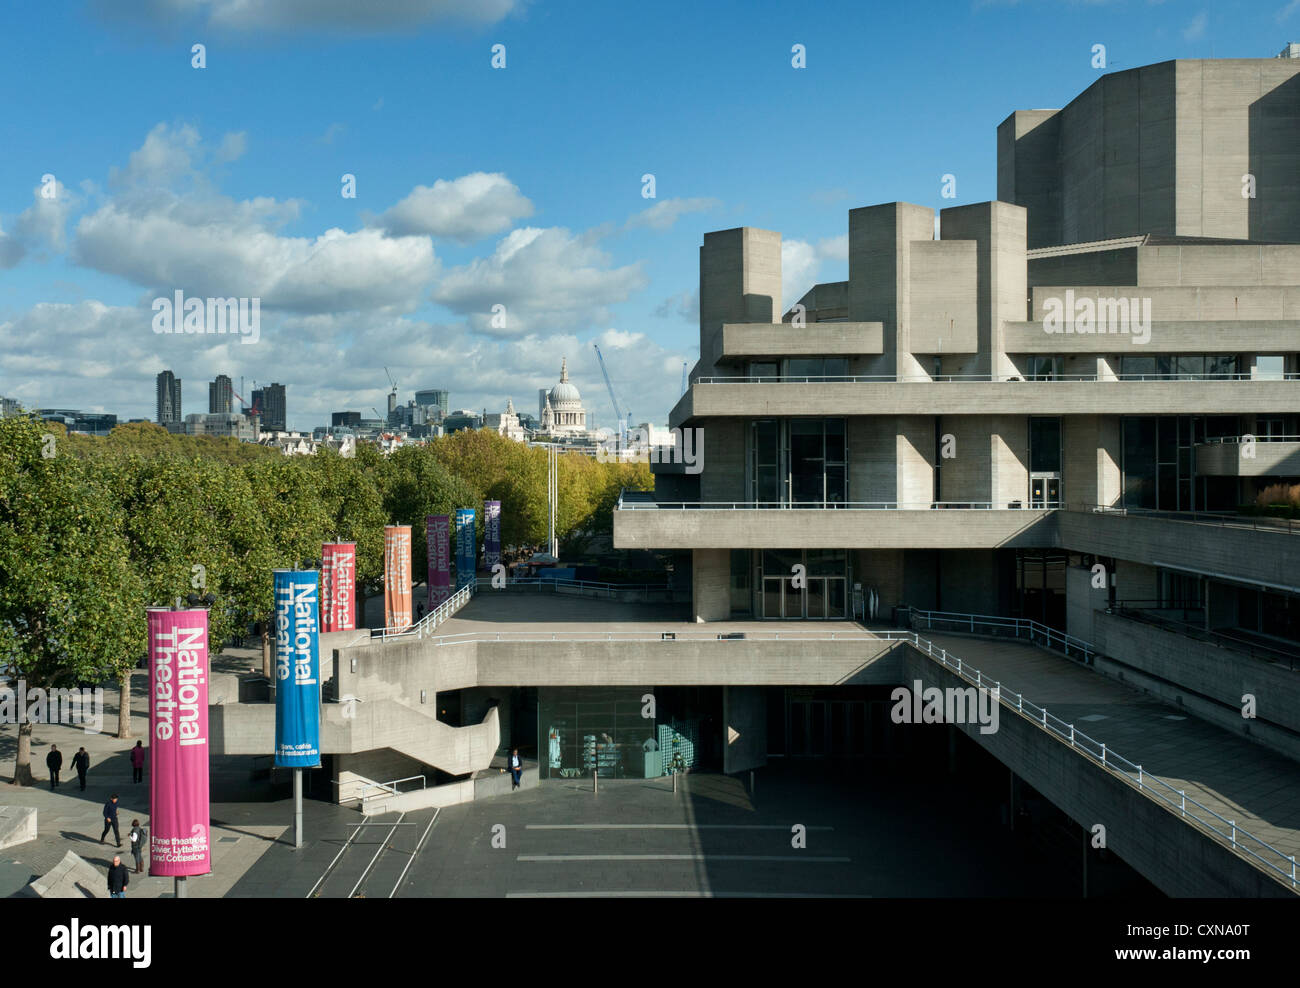 National Theatre, London, showing St Paul's Cathedral and City of London, UK - Stock Image